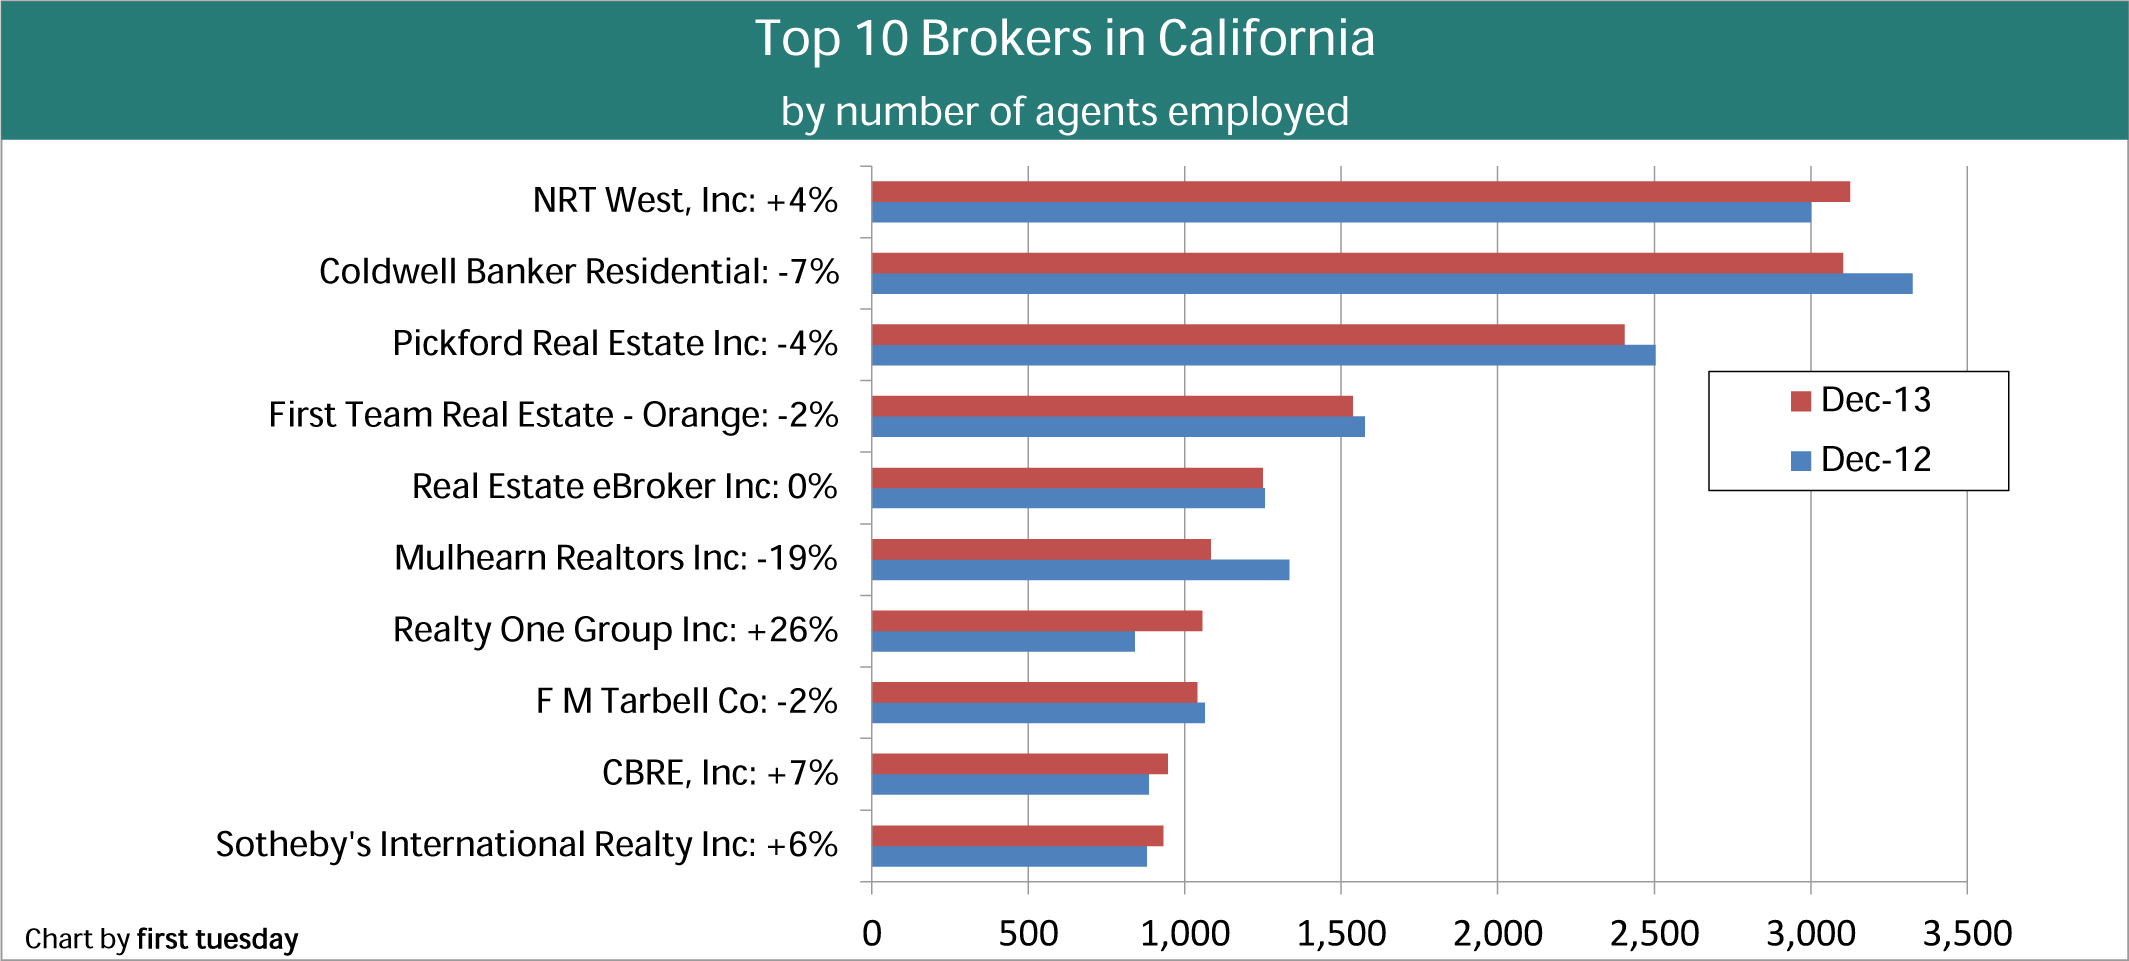 Top 10 brokers